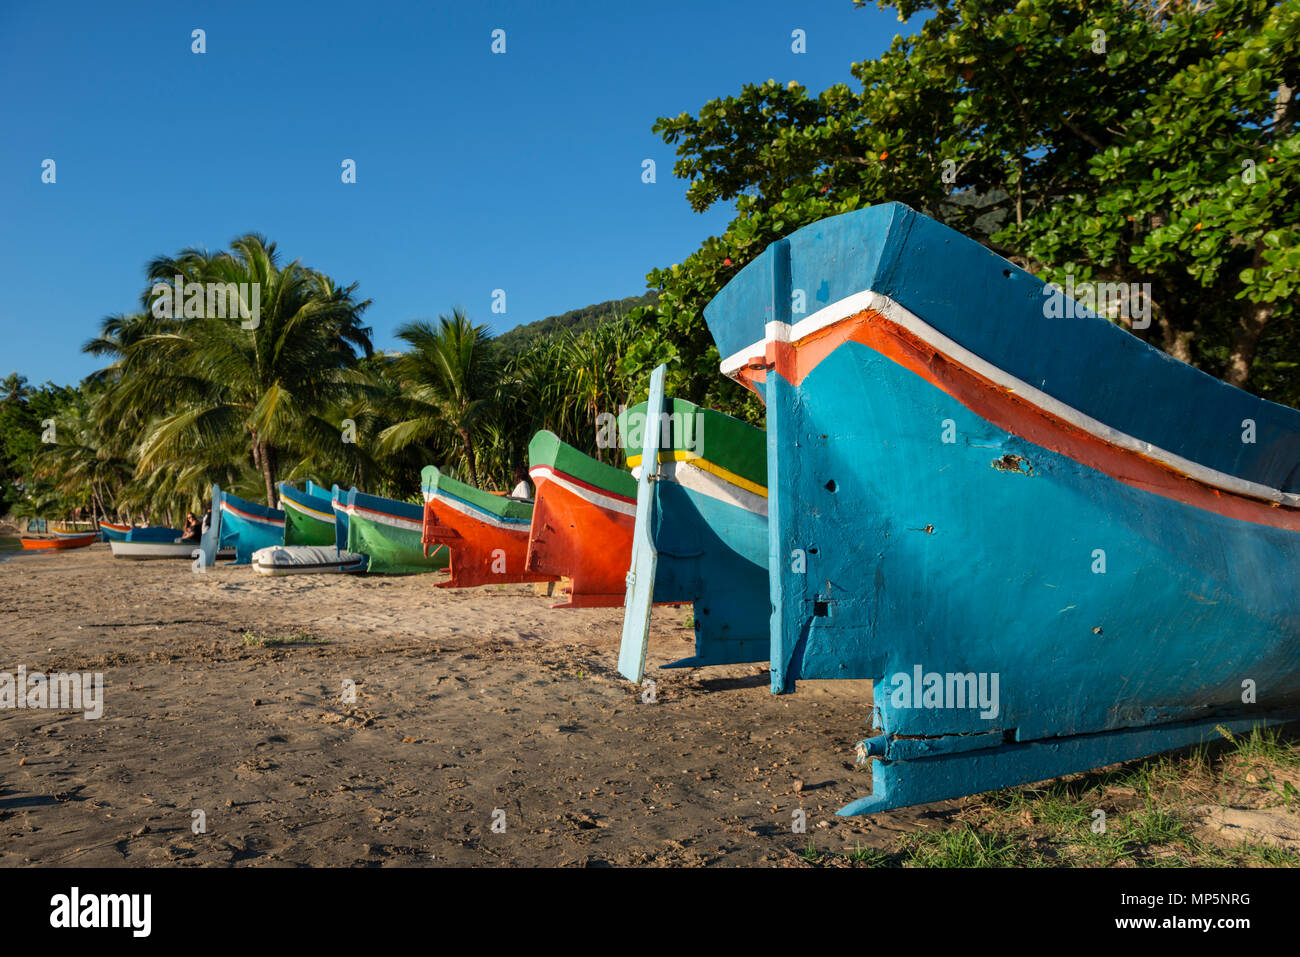 Traditional wooden canoes from Ilhabela, SE Brazil - Stock Image